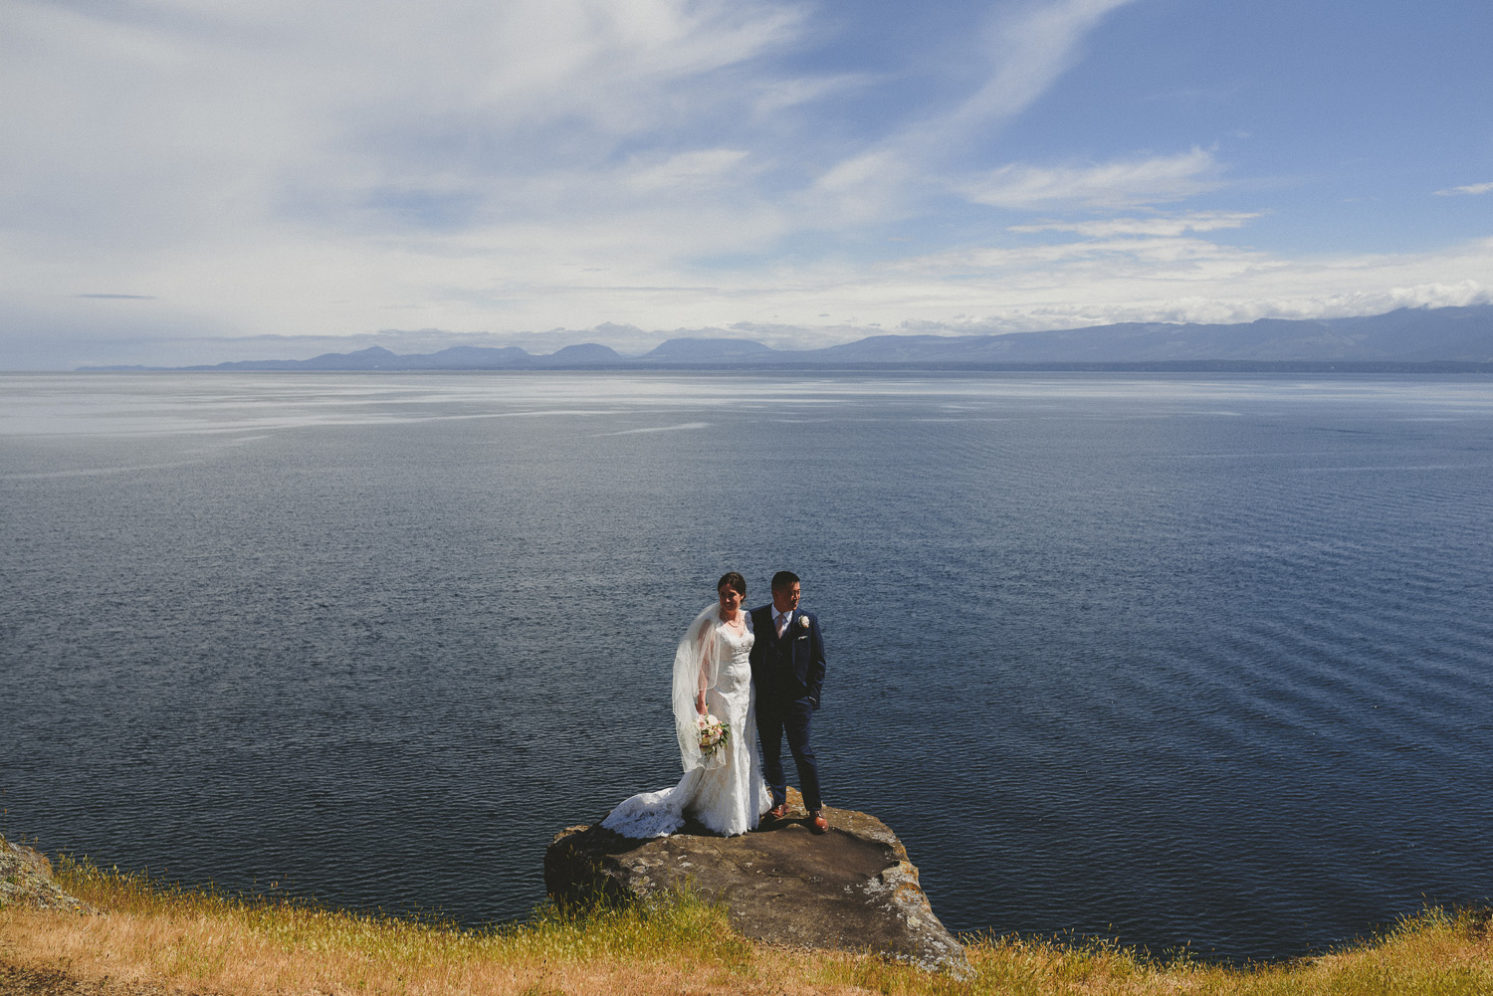 bride & groom at the edge of a cliffe overlooking the ocean